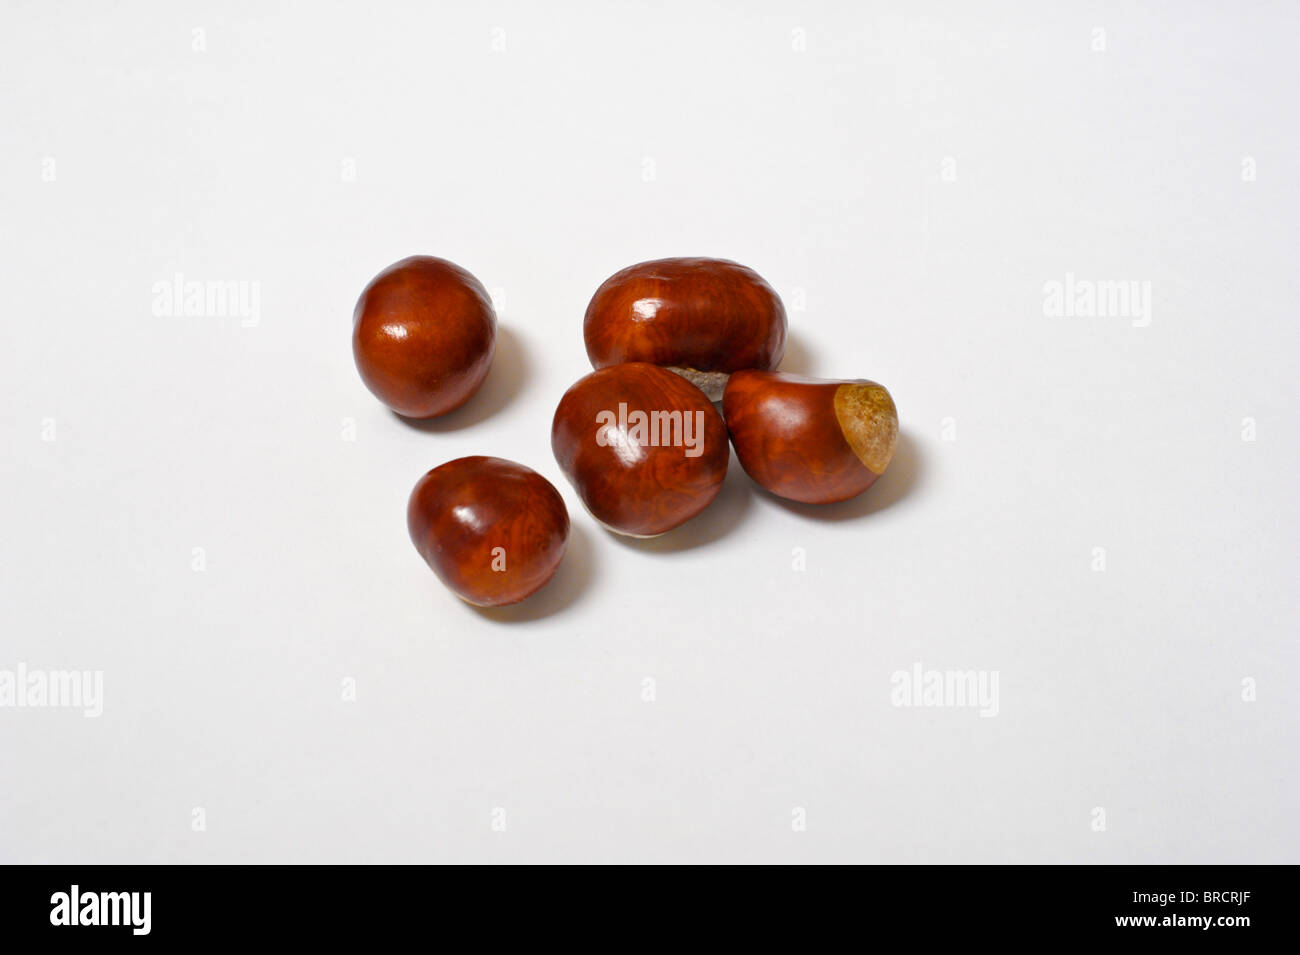 Five shiney conkers on a plain white background - Stock Image